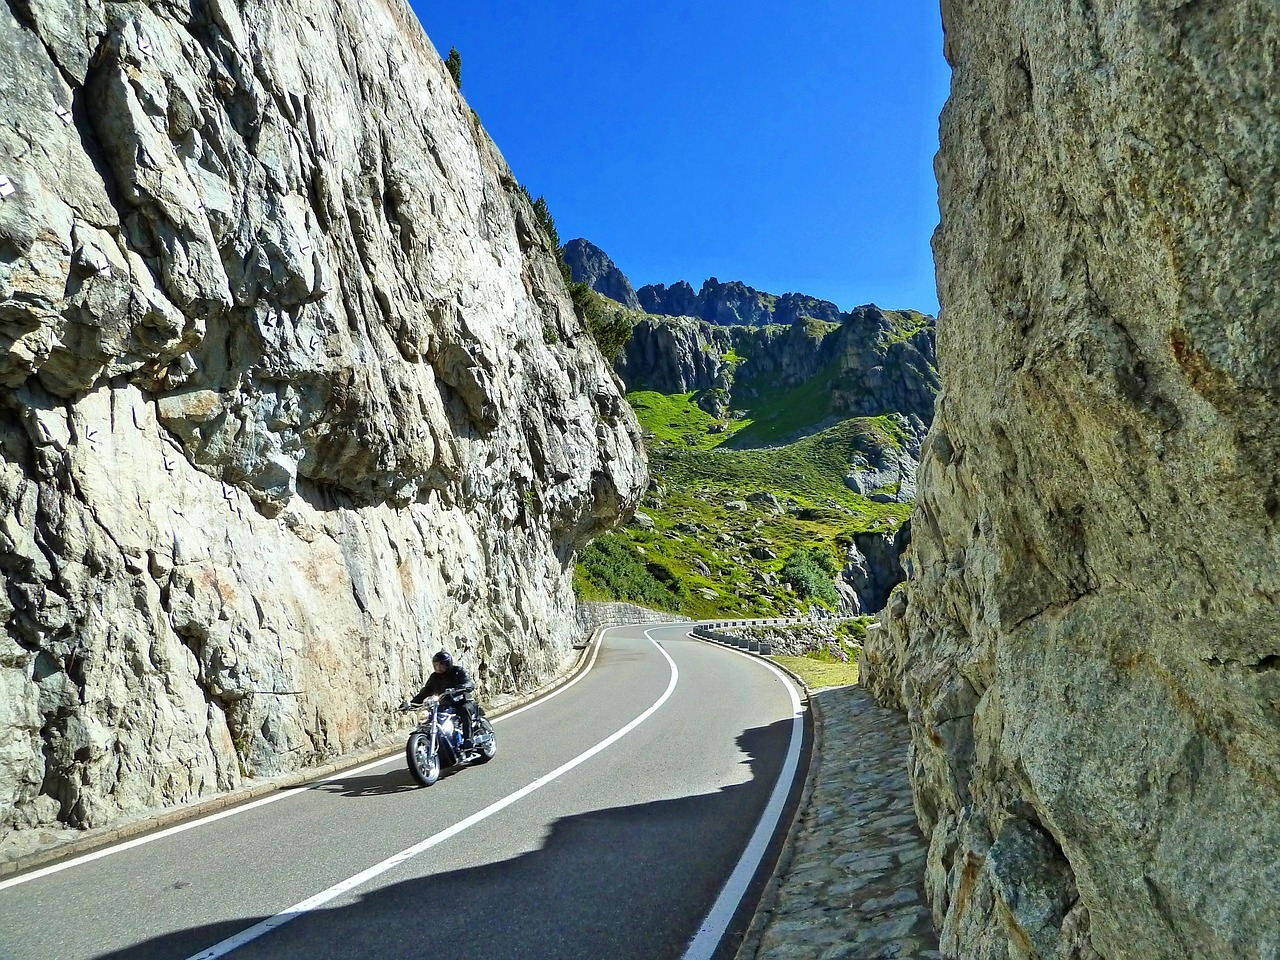 motorcycle on a mountain road